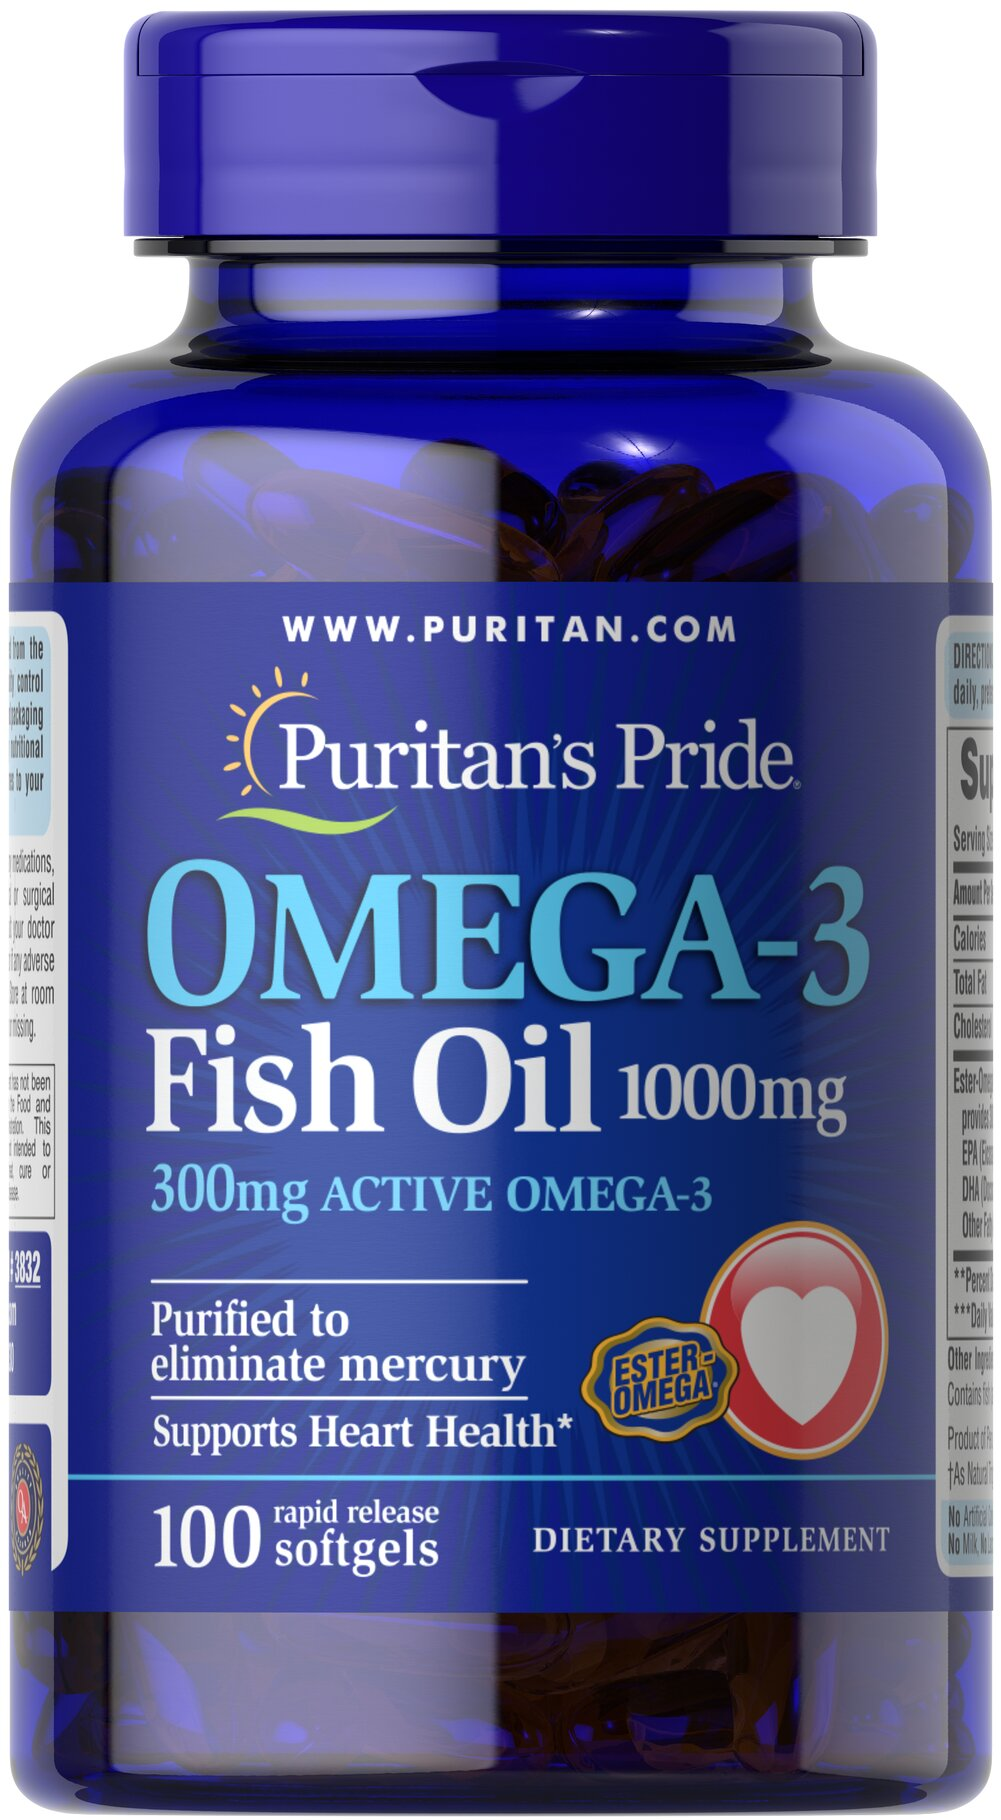 Omega 3 fish oil 1000 mg 300 mg active omega 3 100 for Best fish oil supplement brand